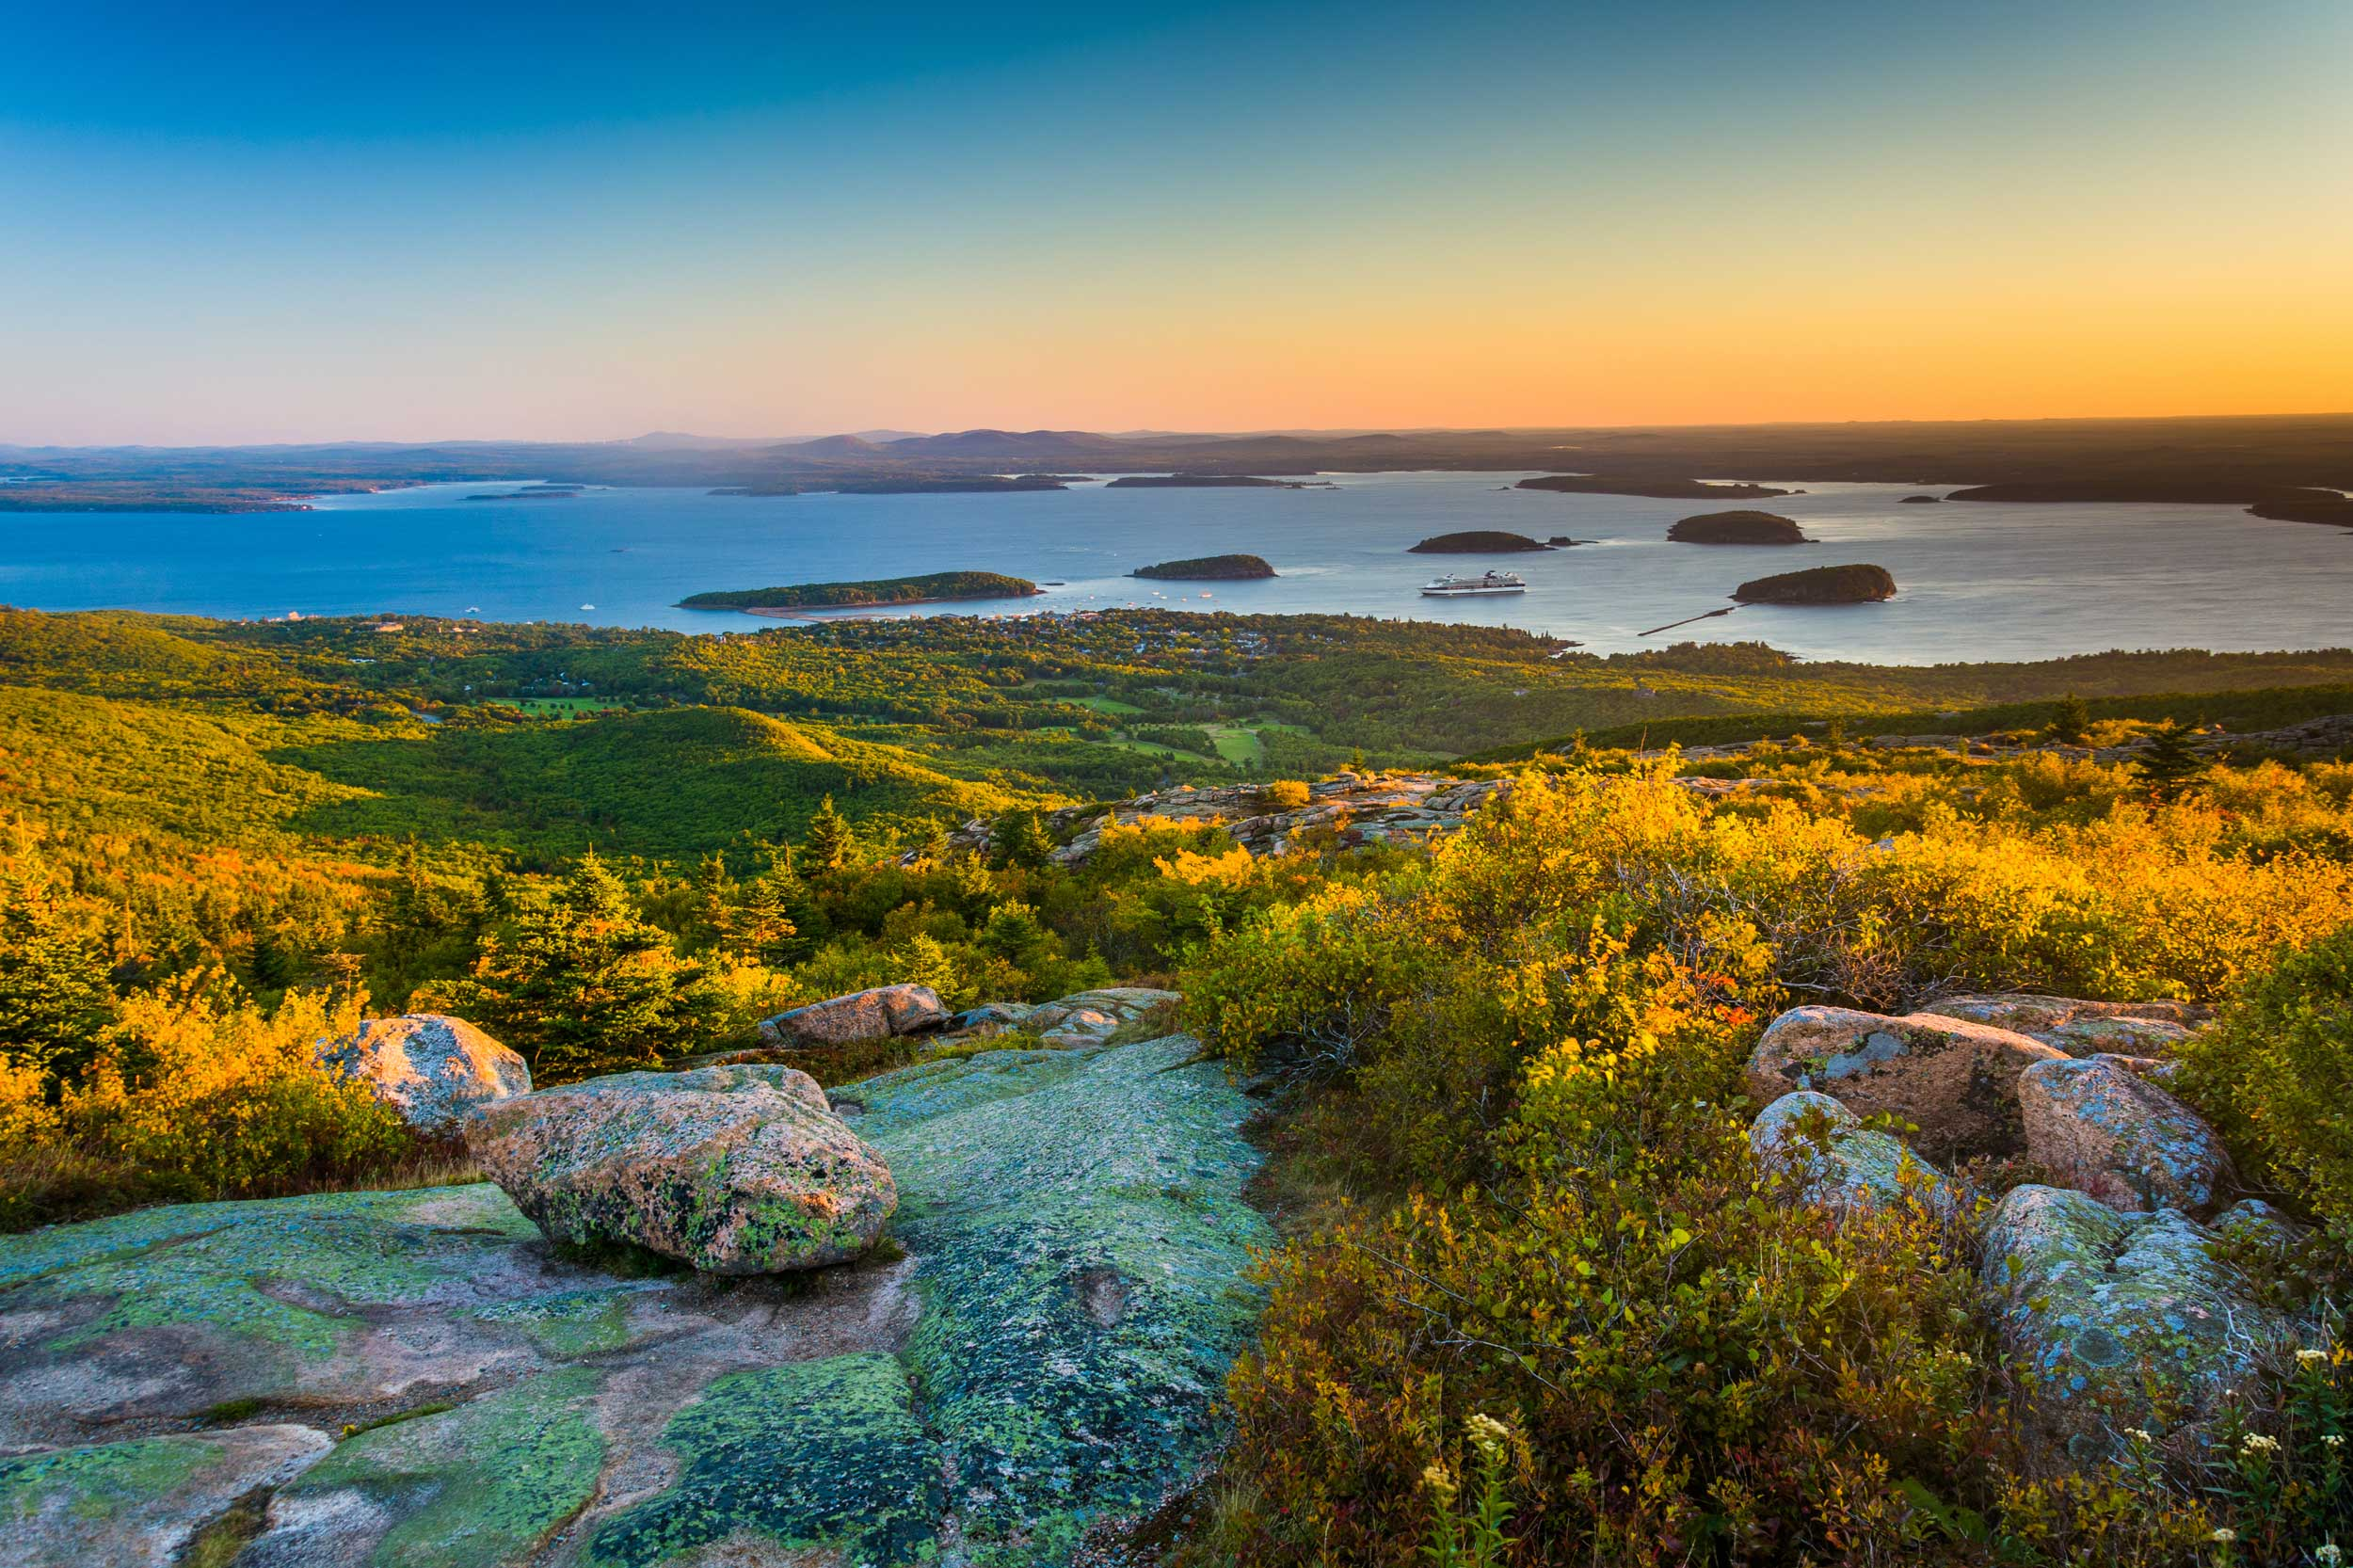 View over a mountaintop towards a town, several small islands in the sea and an orange glow in the sky, Bar Harbor